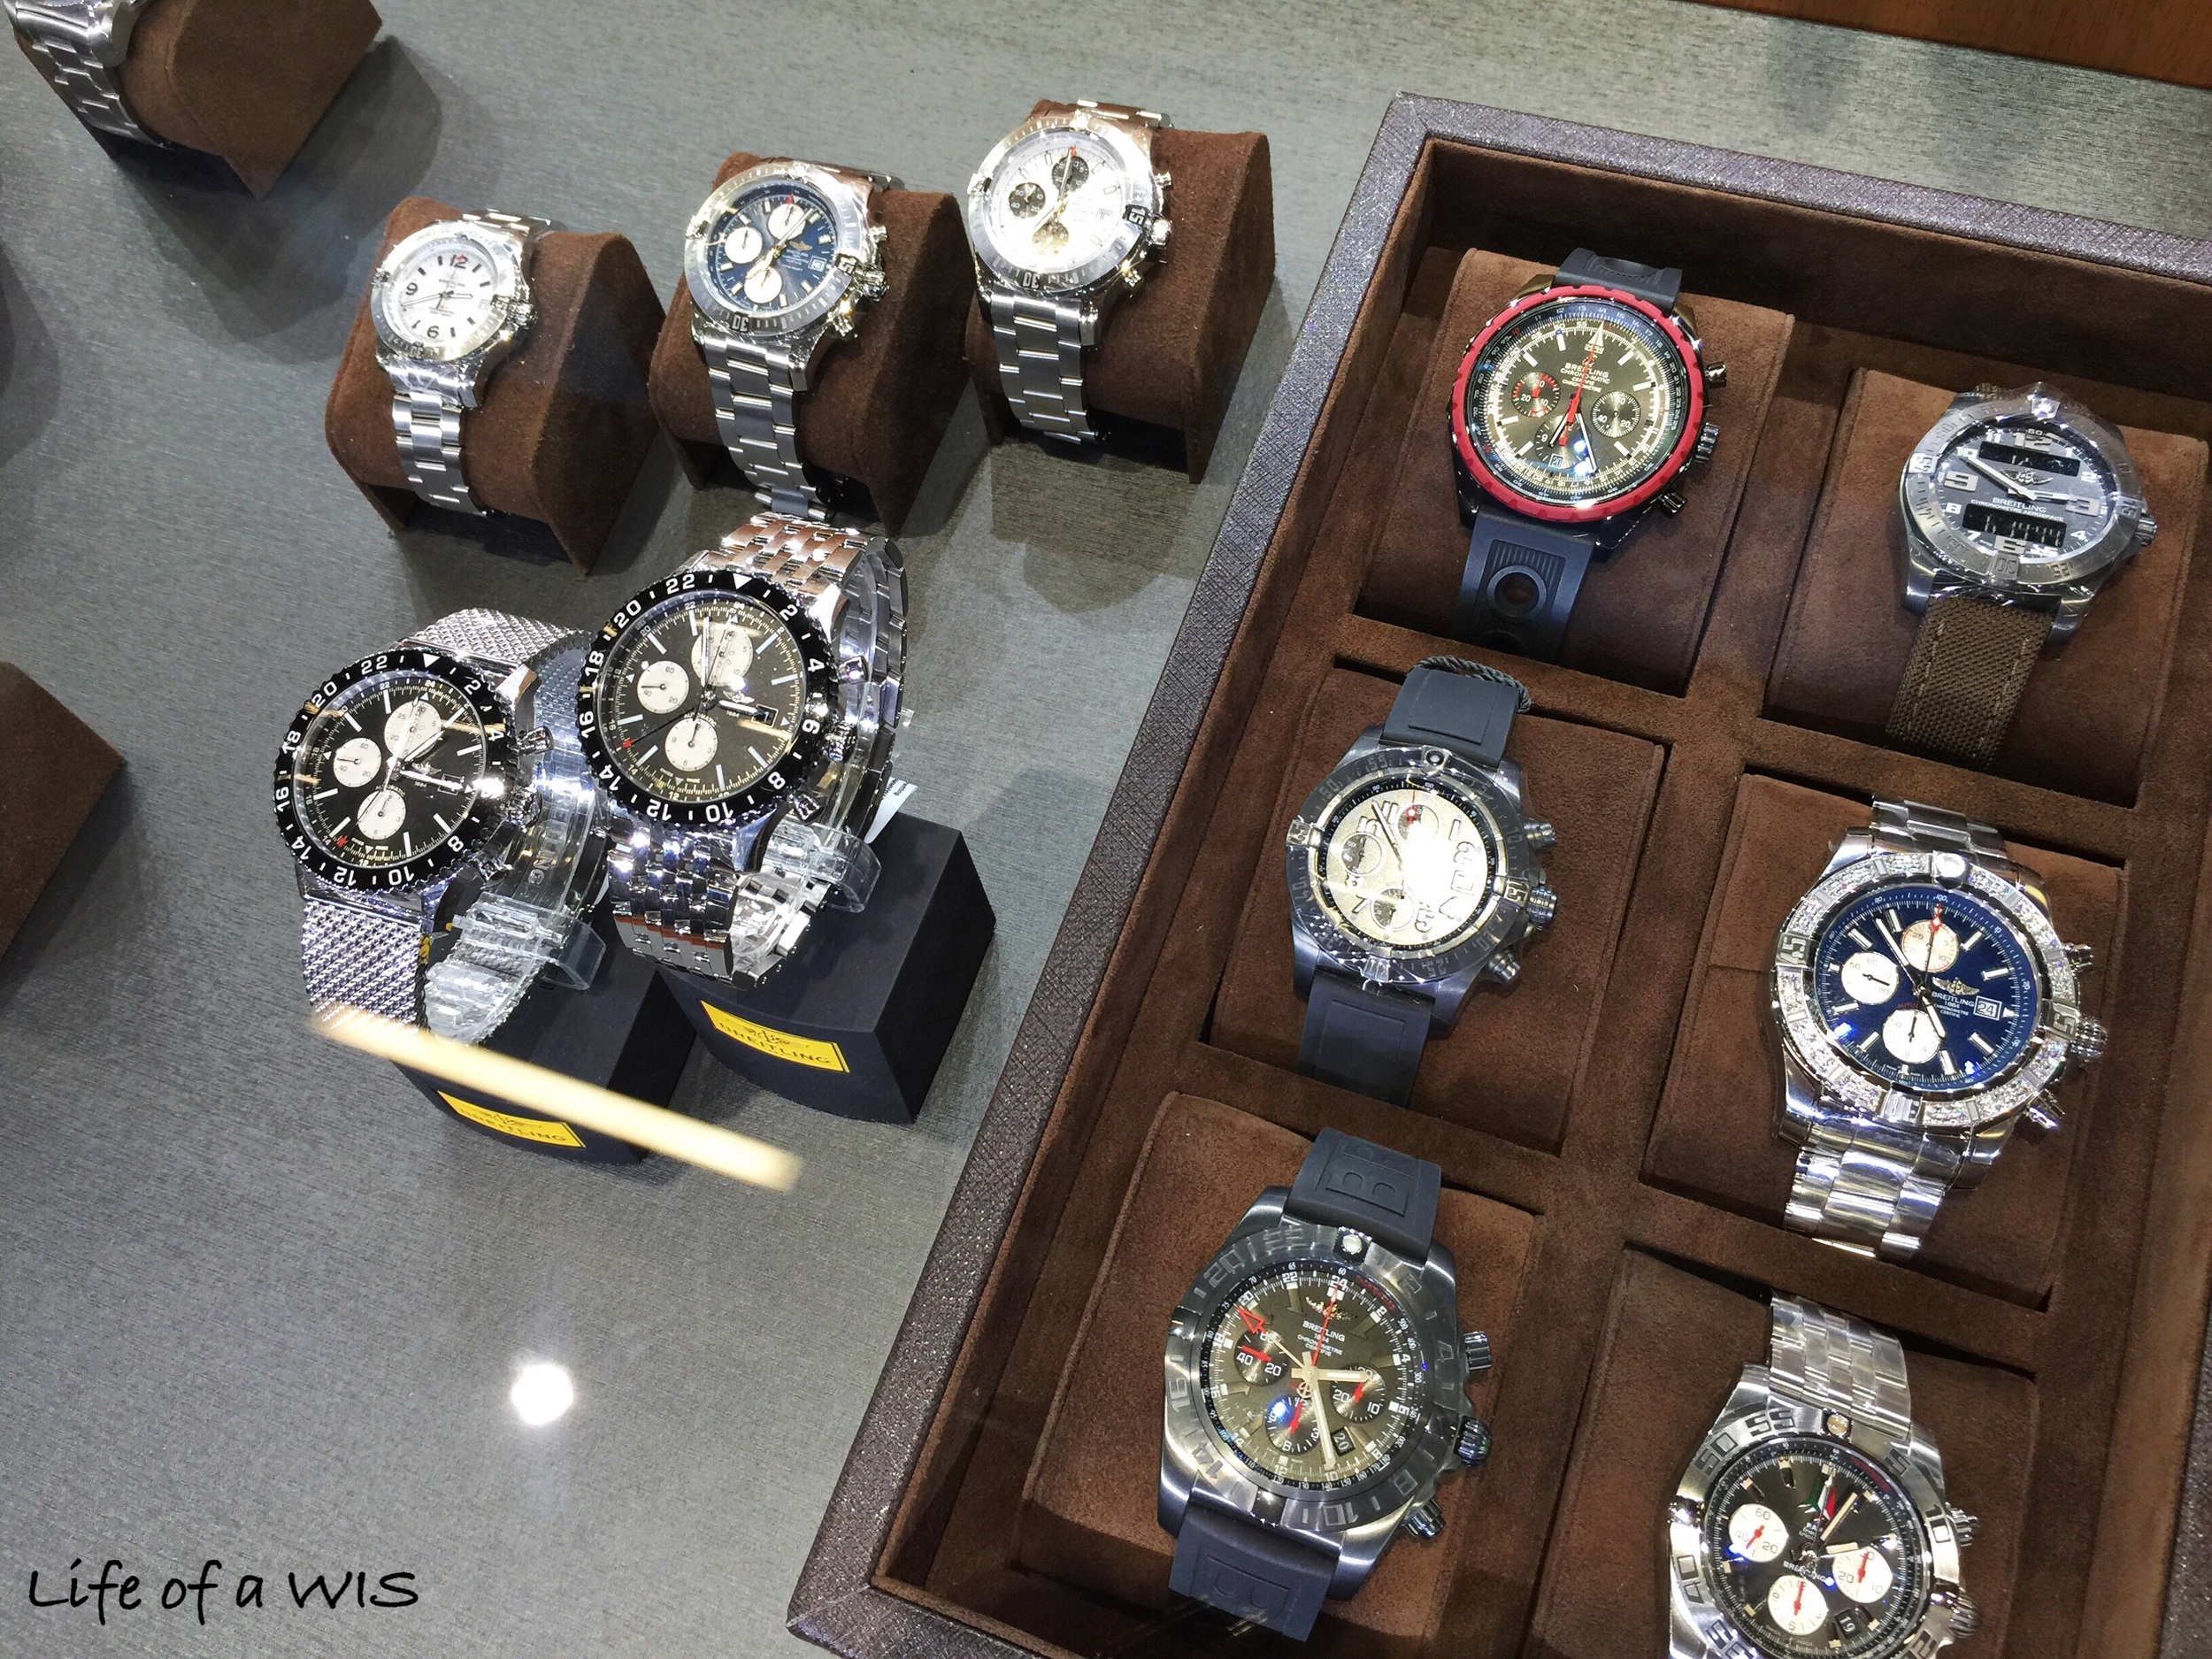 The rest of the Breitlings.